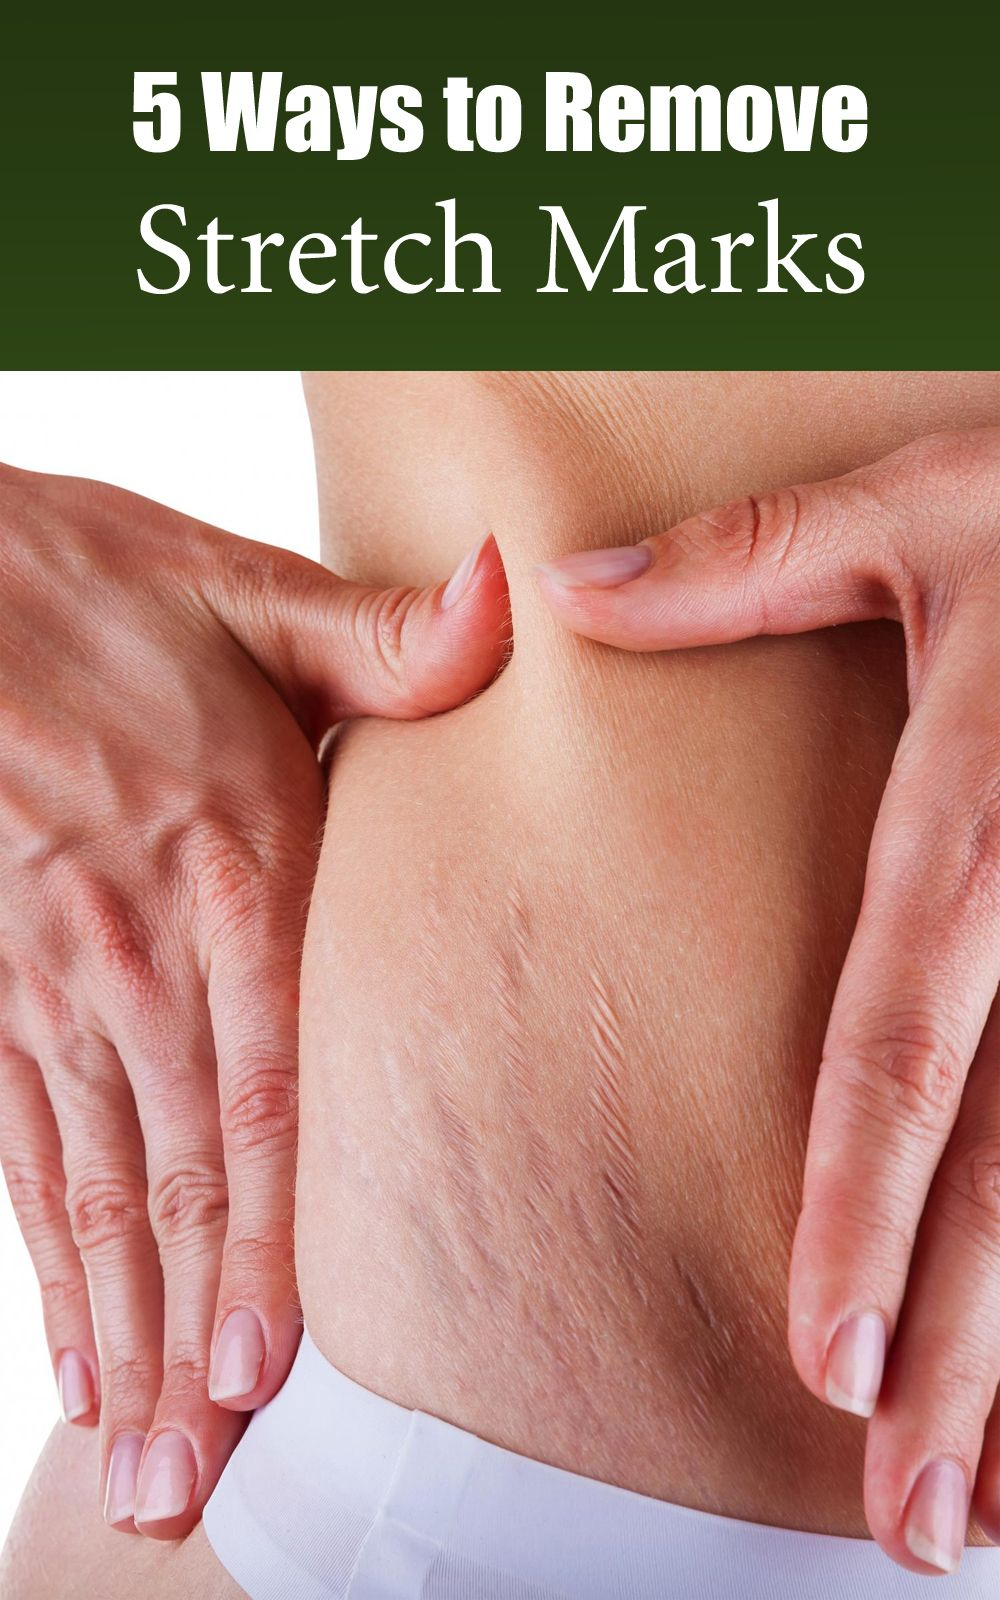 5 Ways to Remove Stretch Marks Naturally Stretch mark